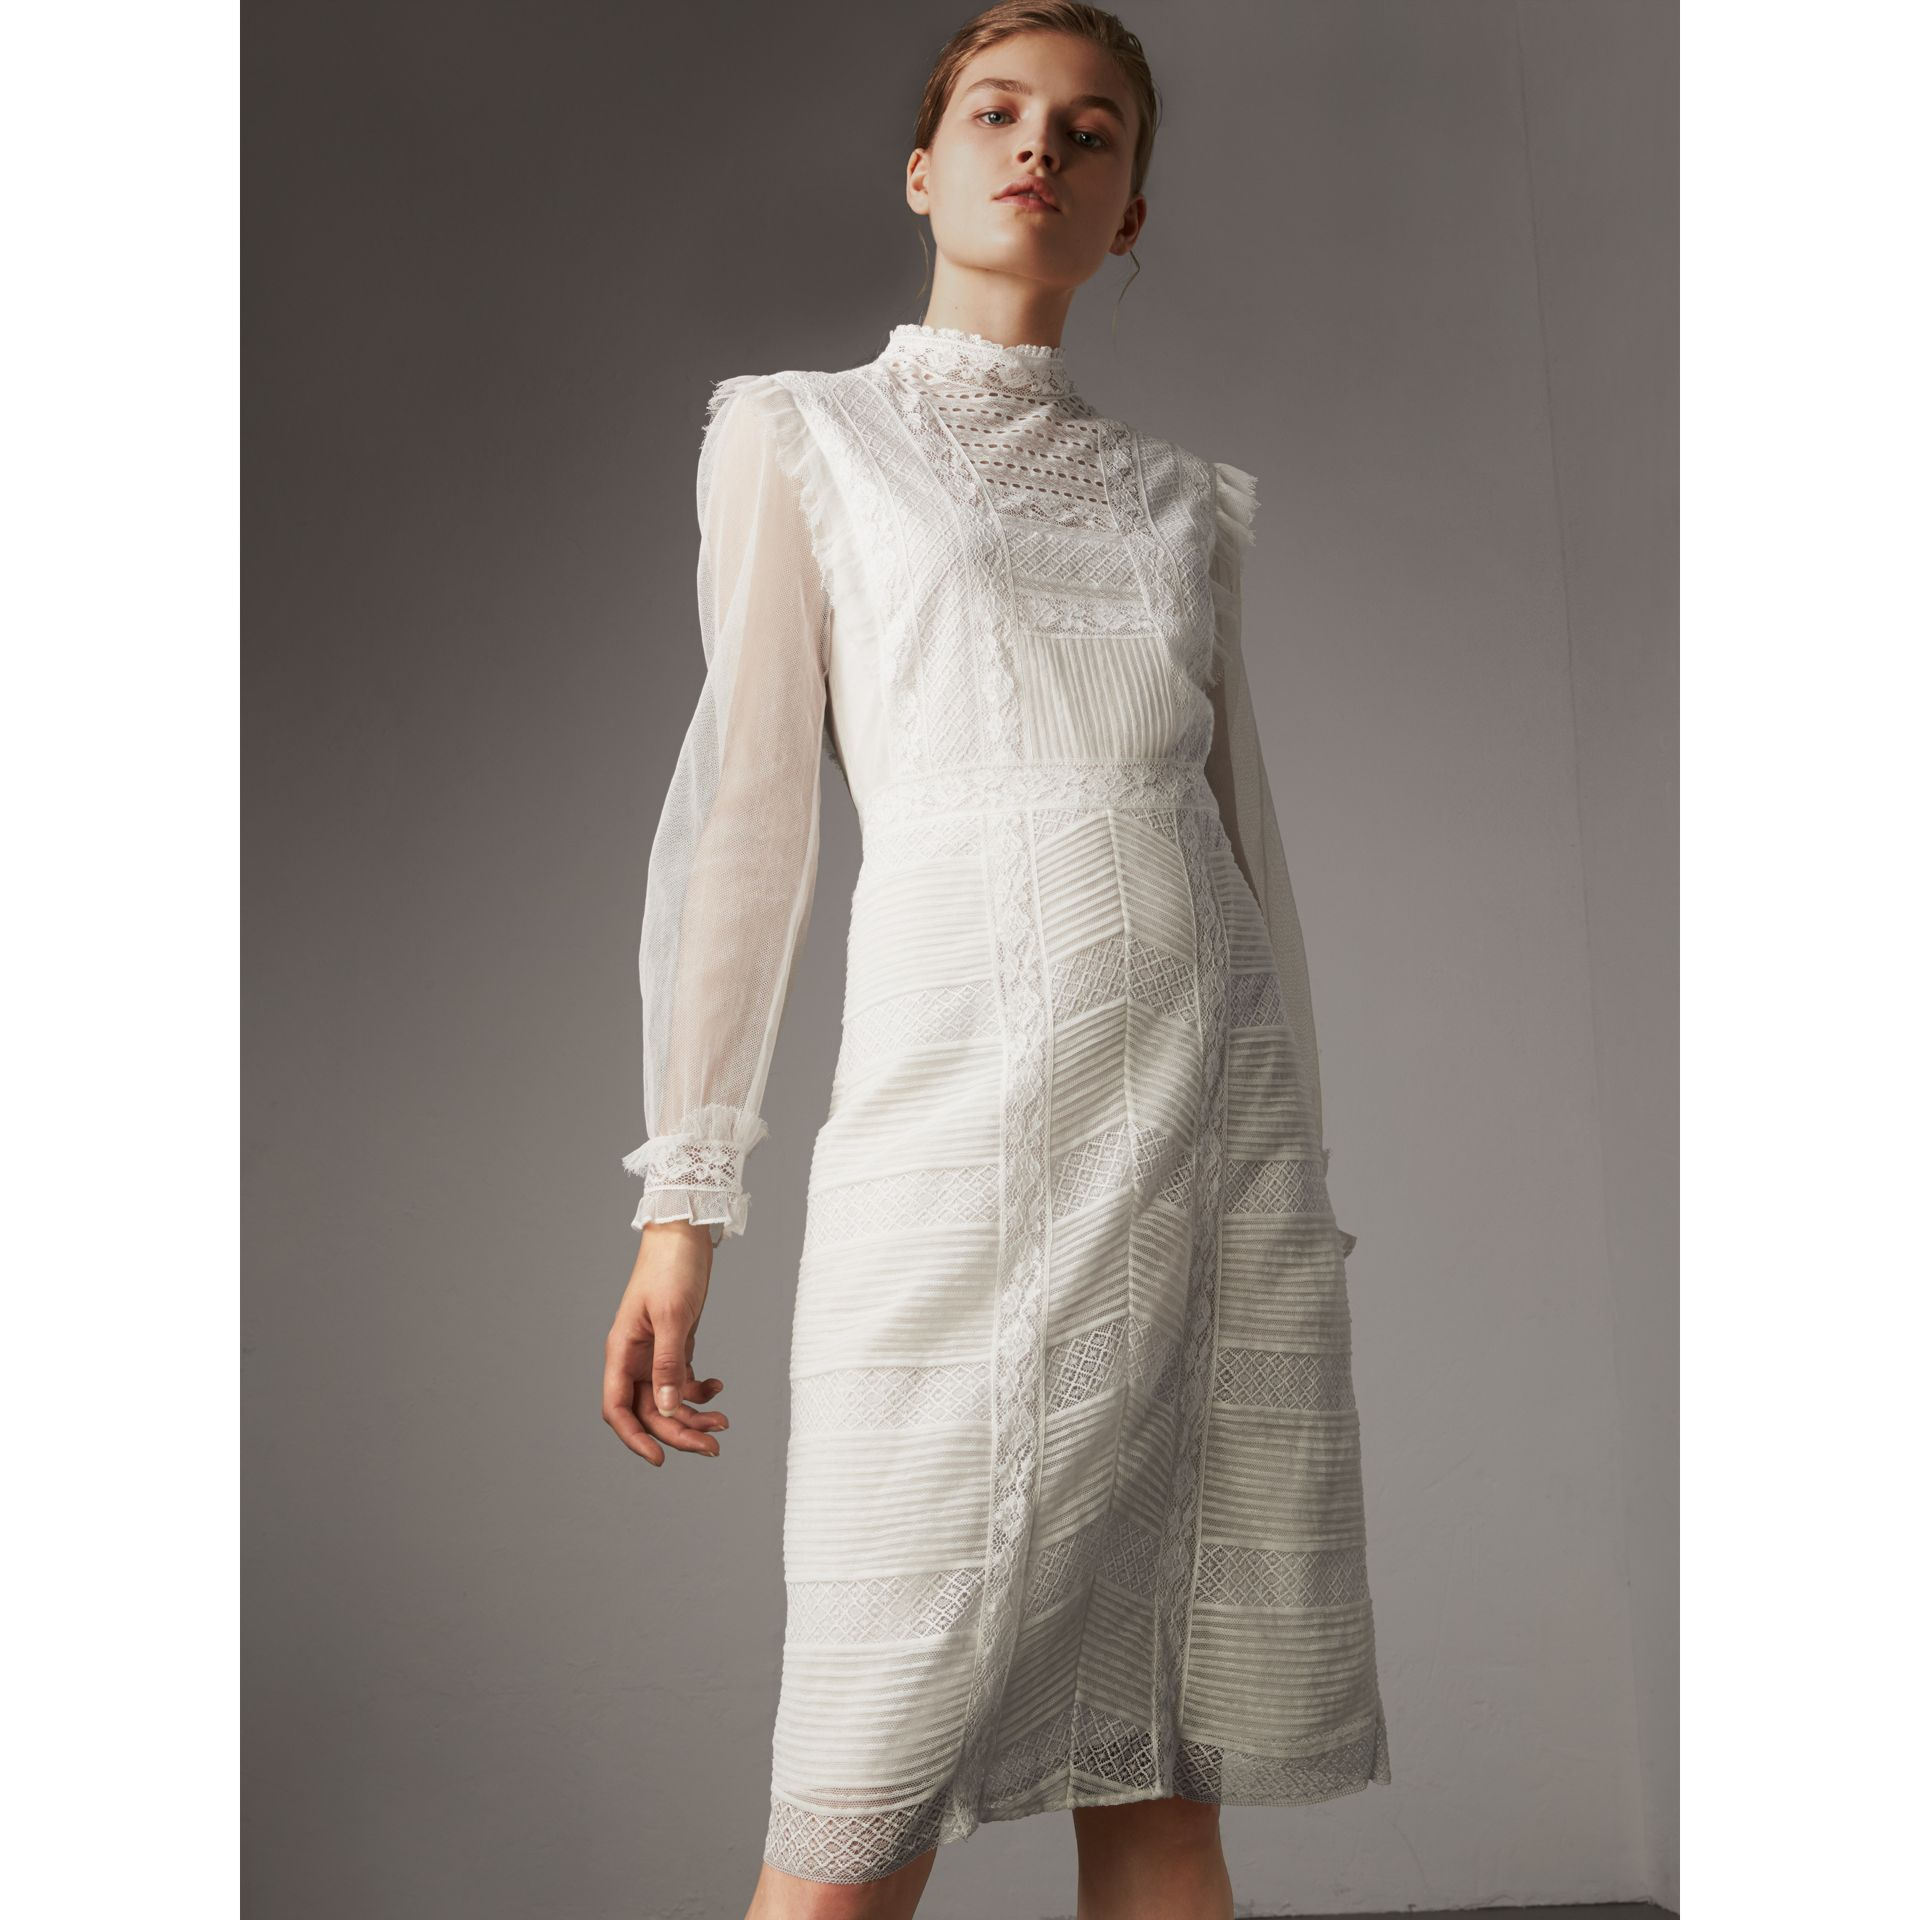 Ruffle Detail Lace Mesh Dress in White - Women | Burberry - gallery image 1